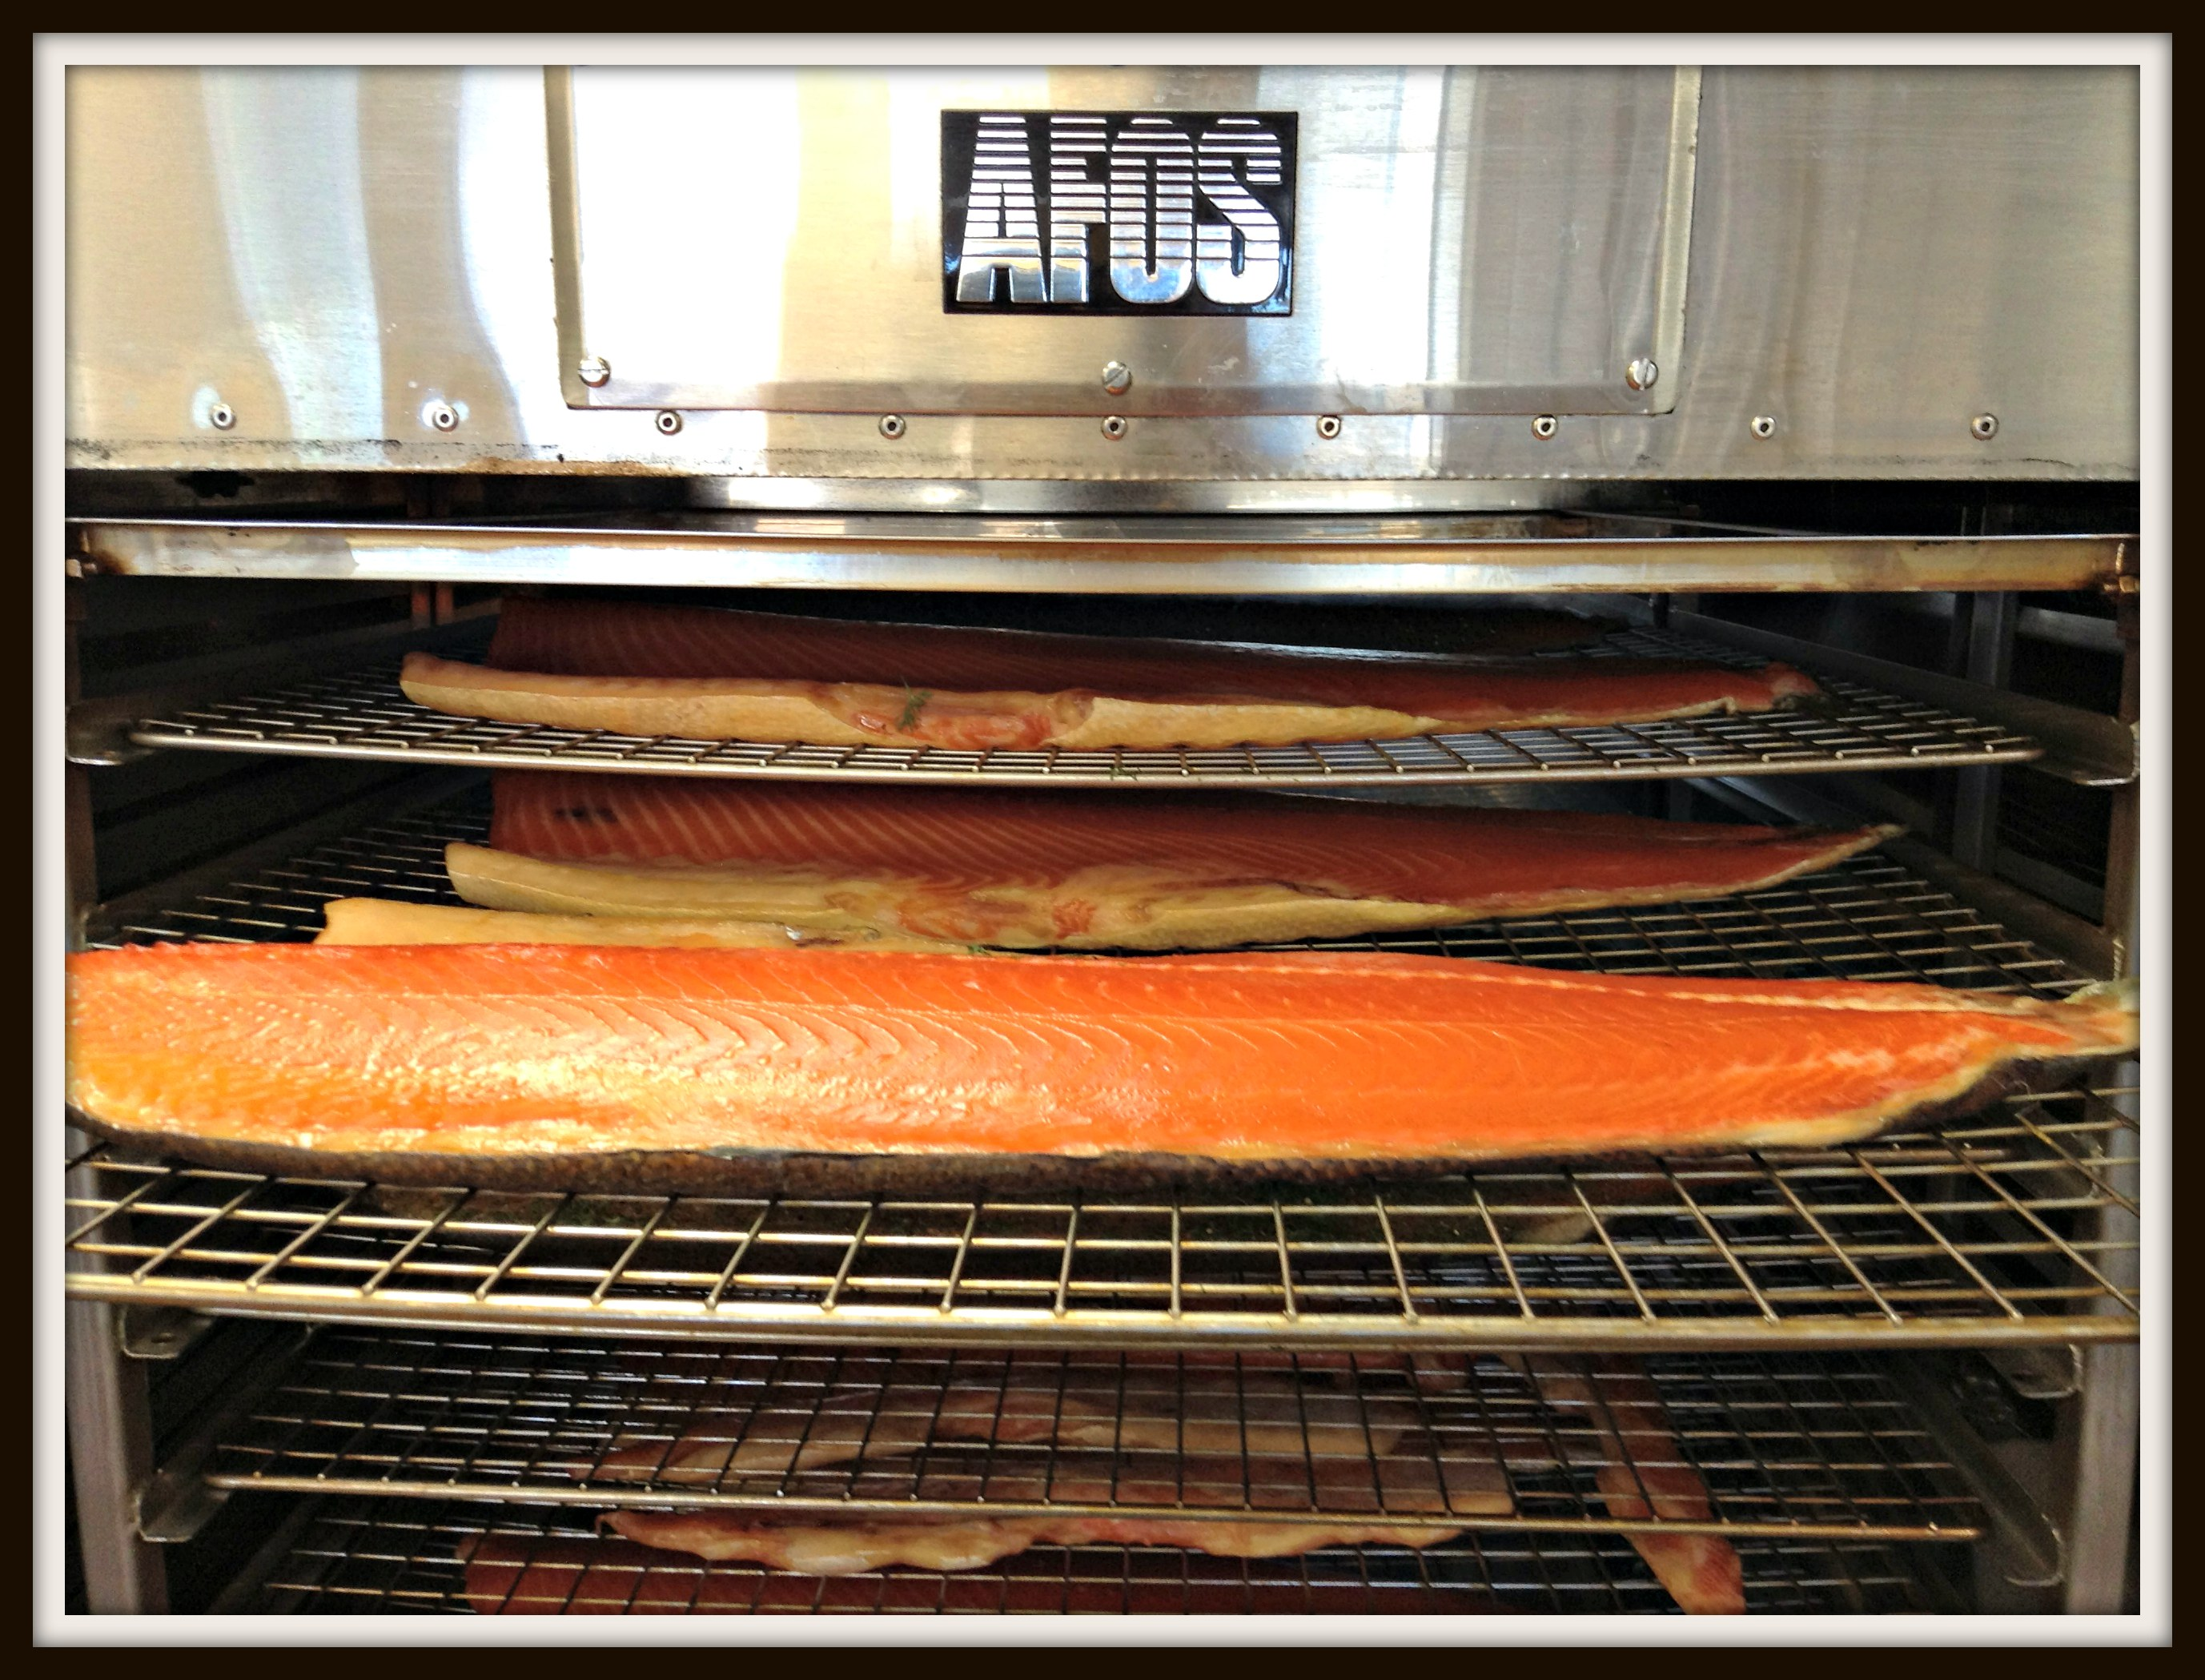 Salmon fillets about to be smoked